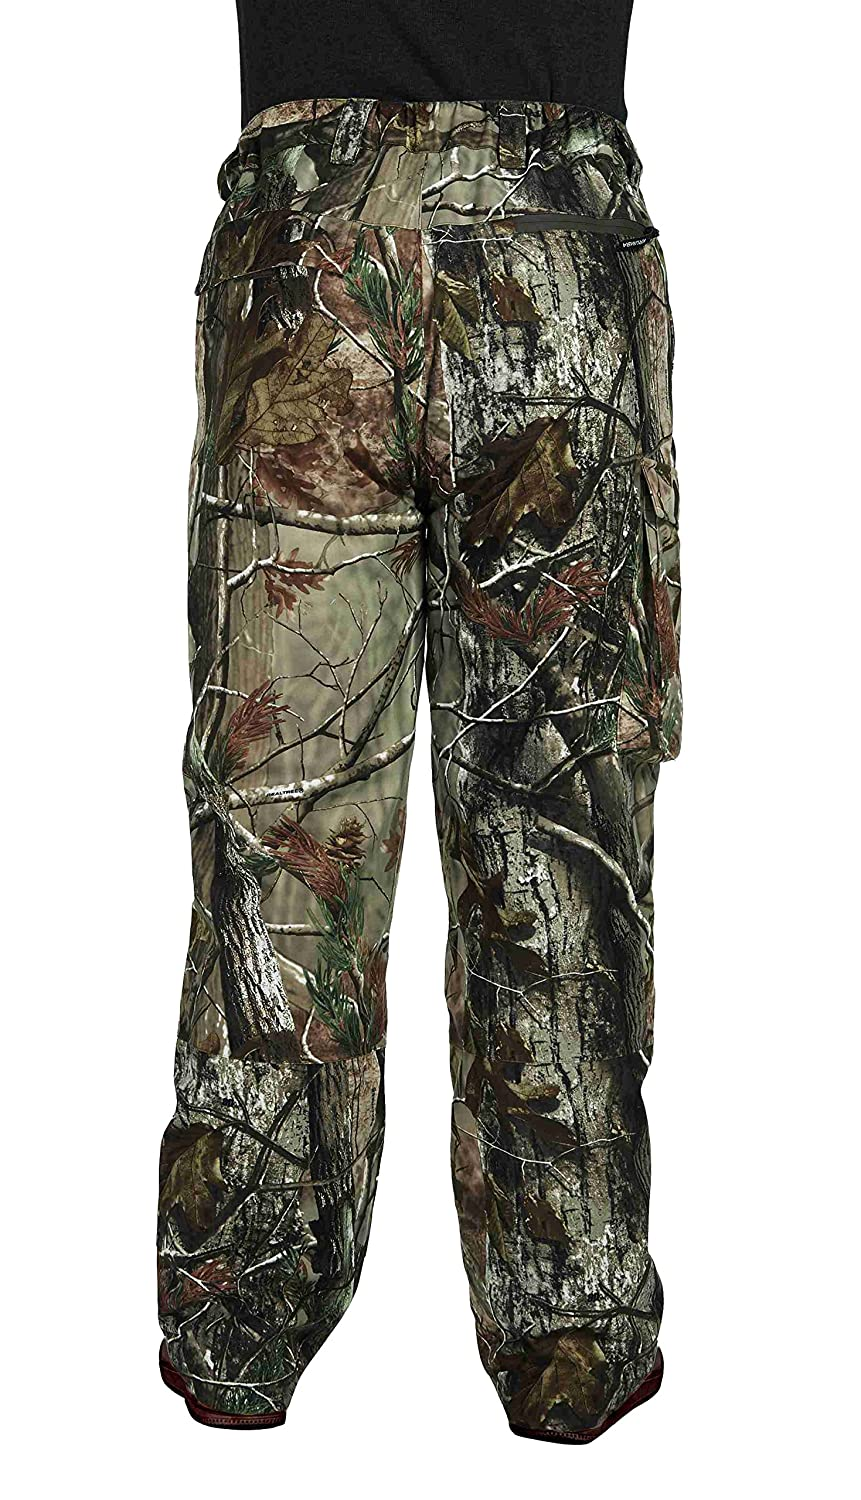 67735ca539a54 Amazon.com: Krumba Men's Camouflage Hunting Windproof Waterproof Seam  Sealed Pant: Sports & Outdoors